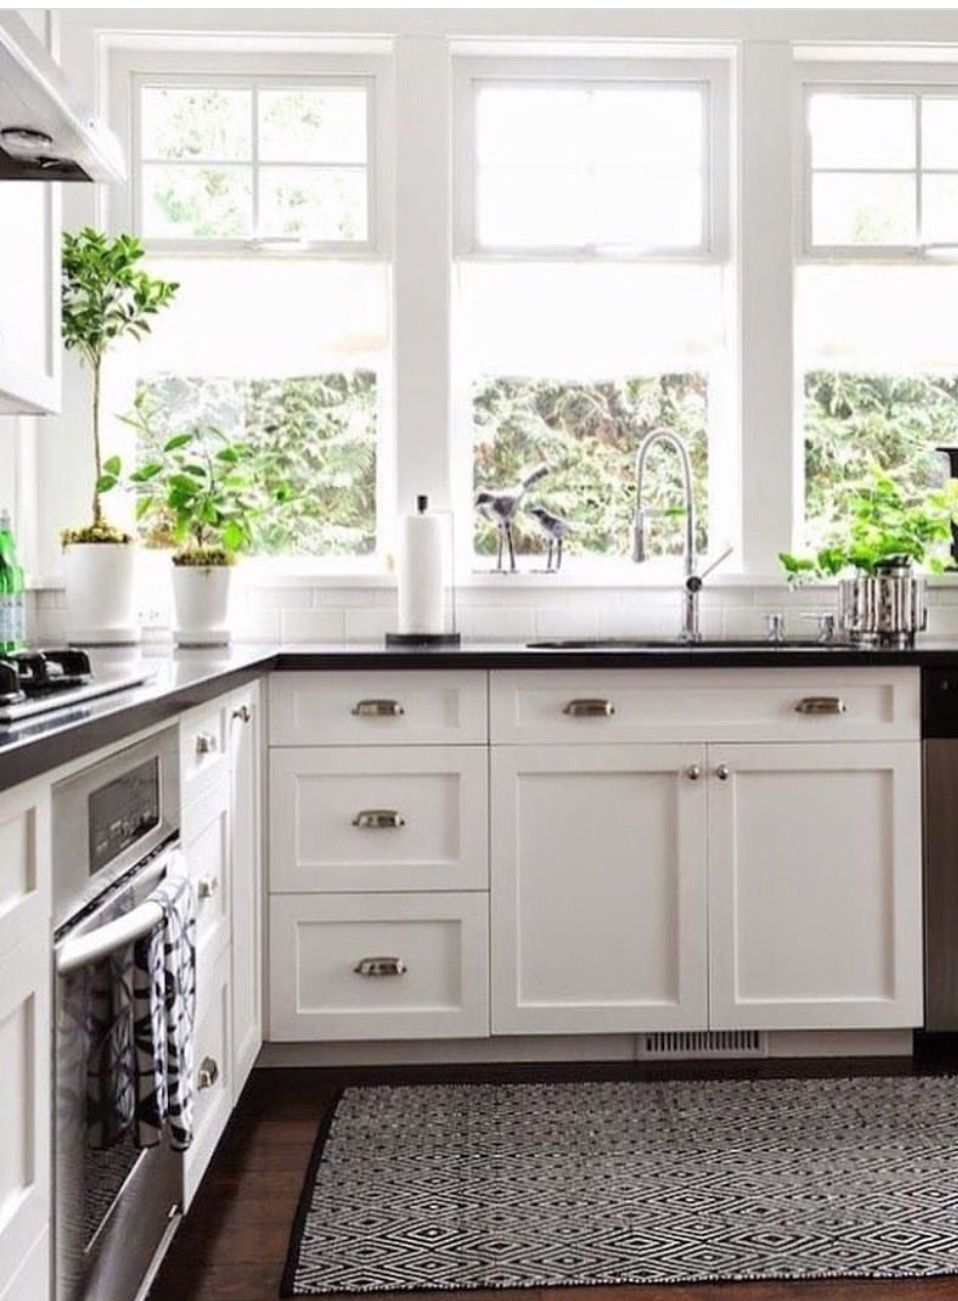 modern kitchen cabinets ideas to get more inspiration dish